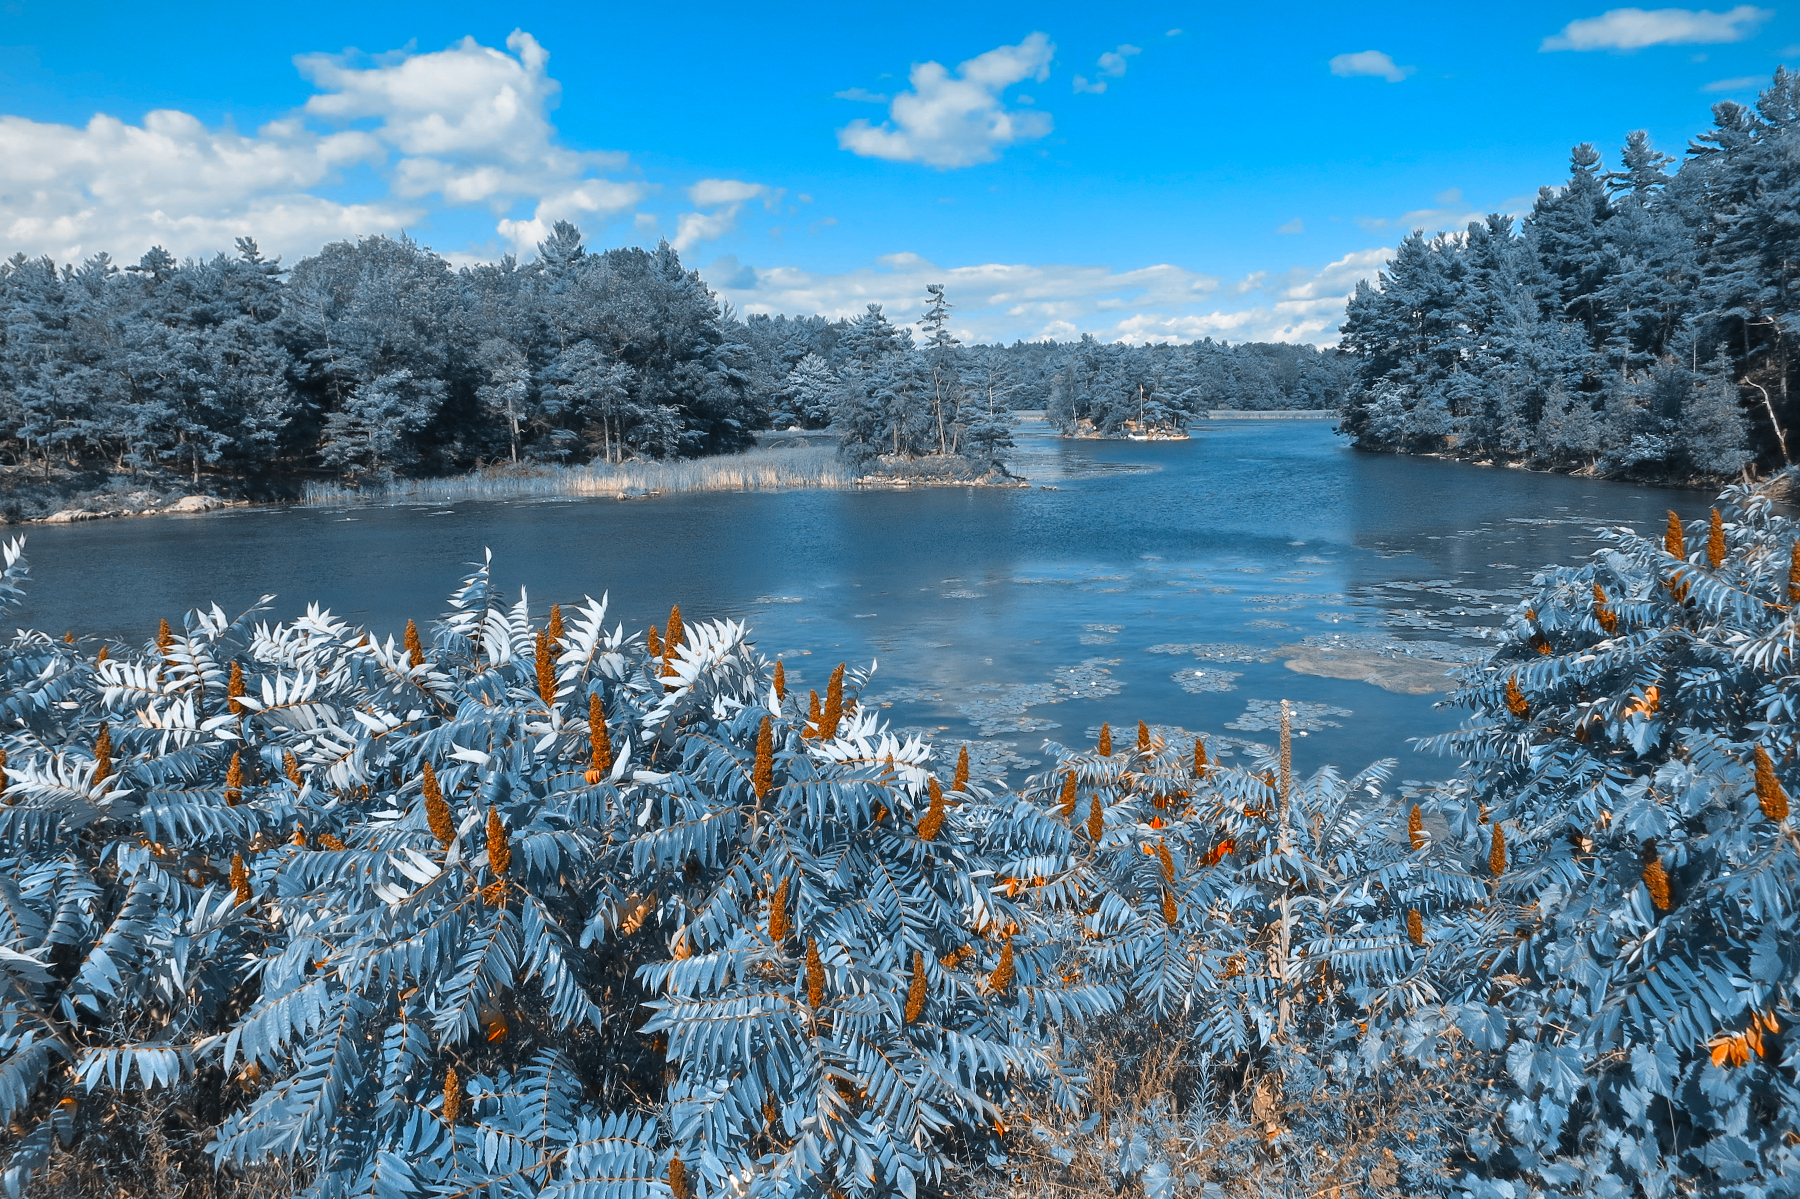 Thousand islands scenery - wintry blue photo